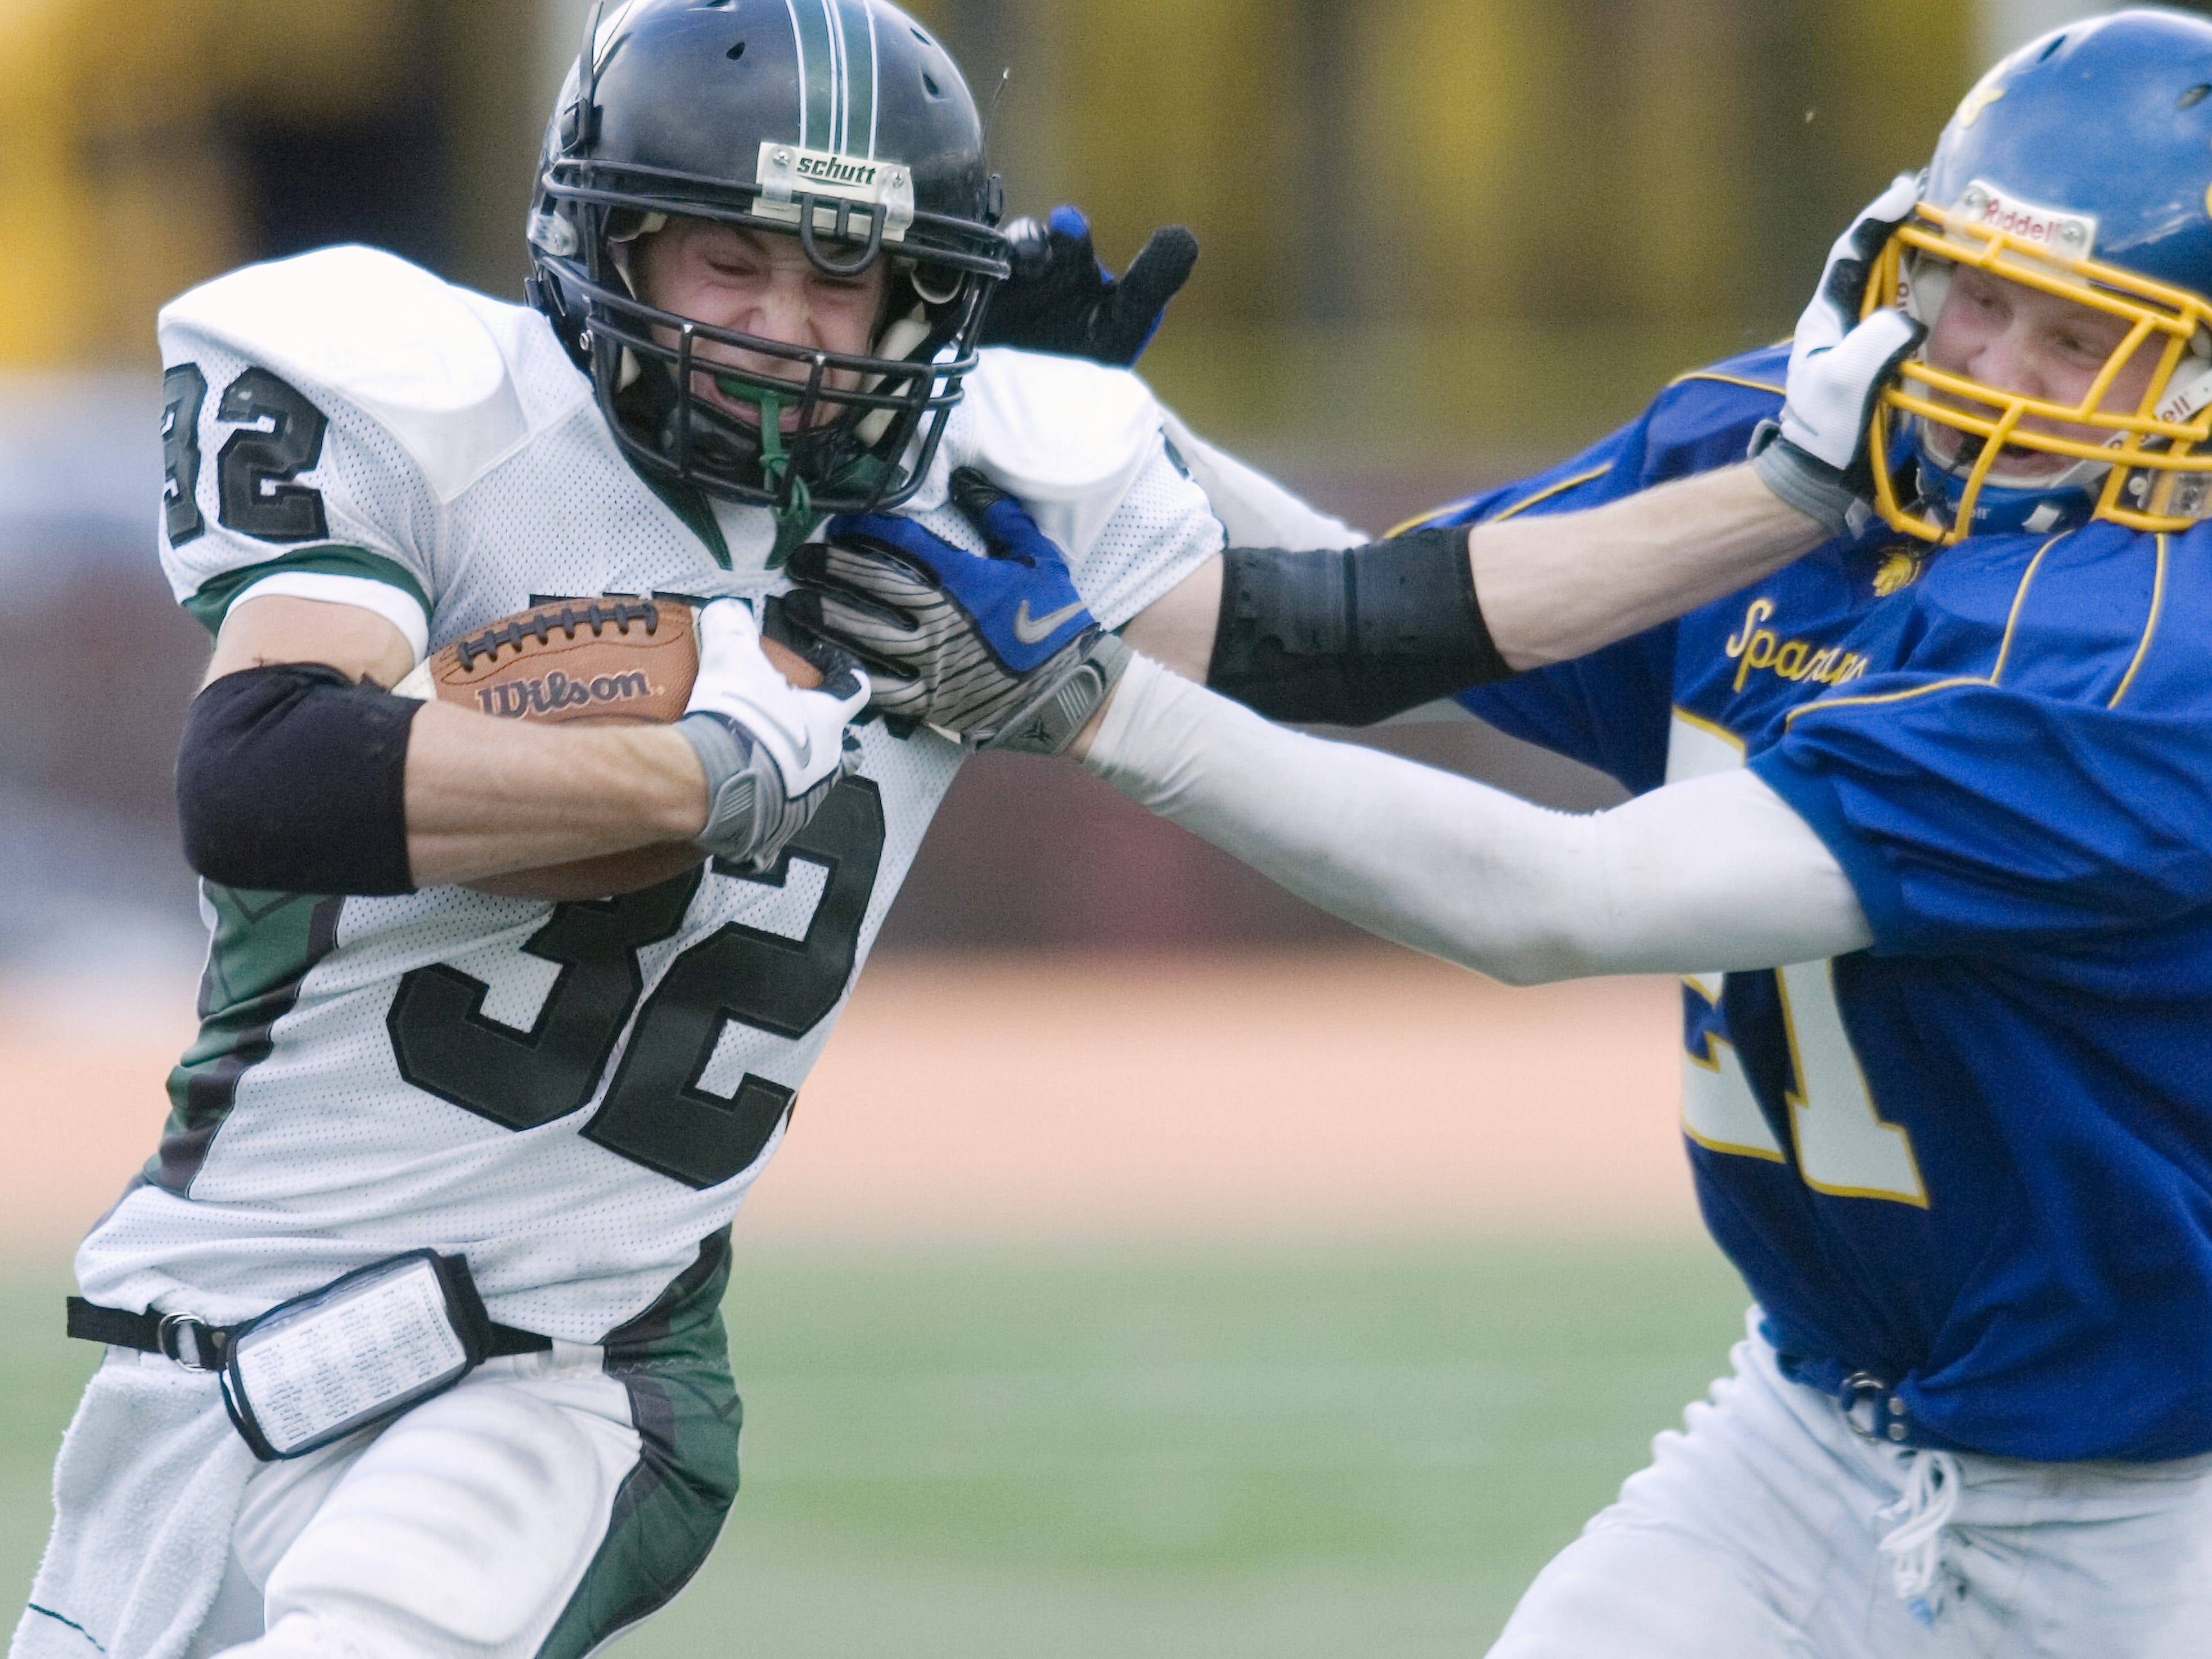 Maine-Endwell's Mitch Tallon, right, and Corning West's Gregory Riff in the third quarter of a 2008 game at Ty Cobb Stadium.